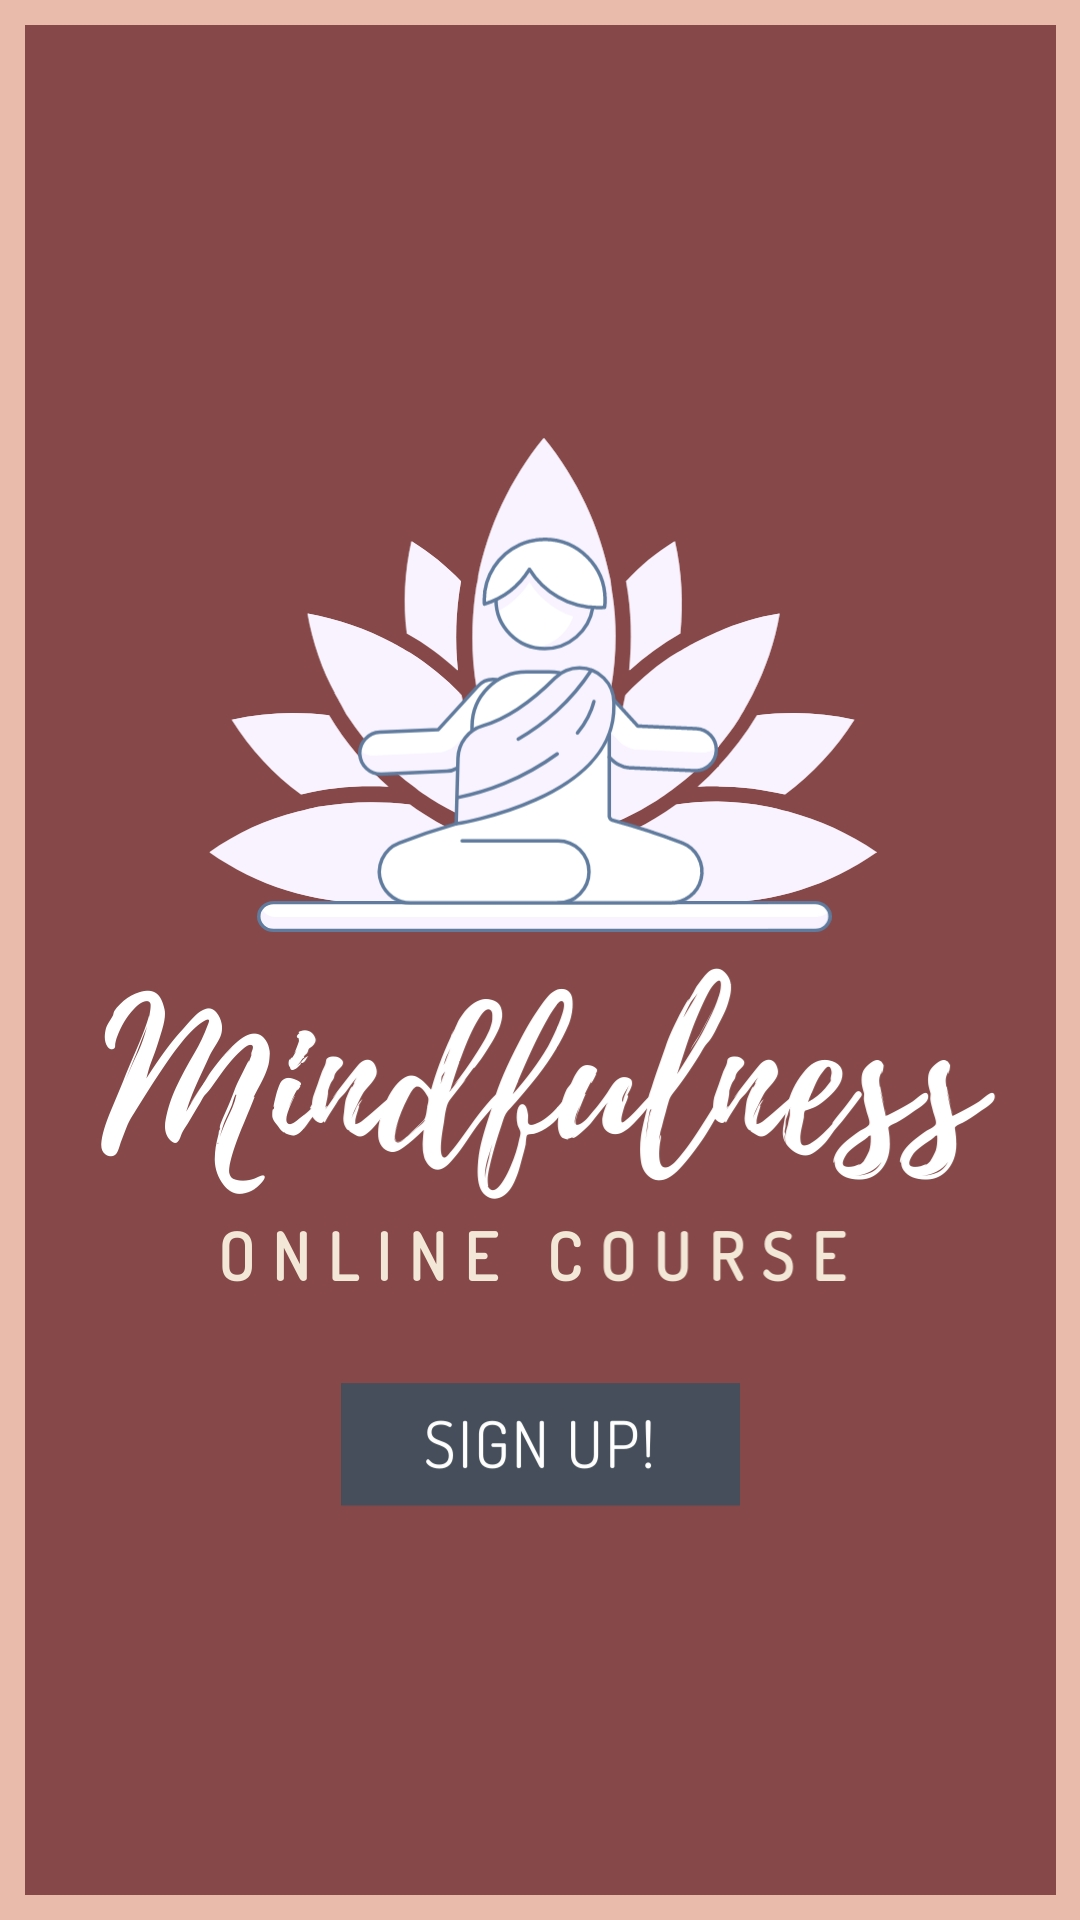 Mindfulness Online Course Vertical Template